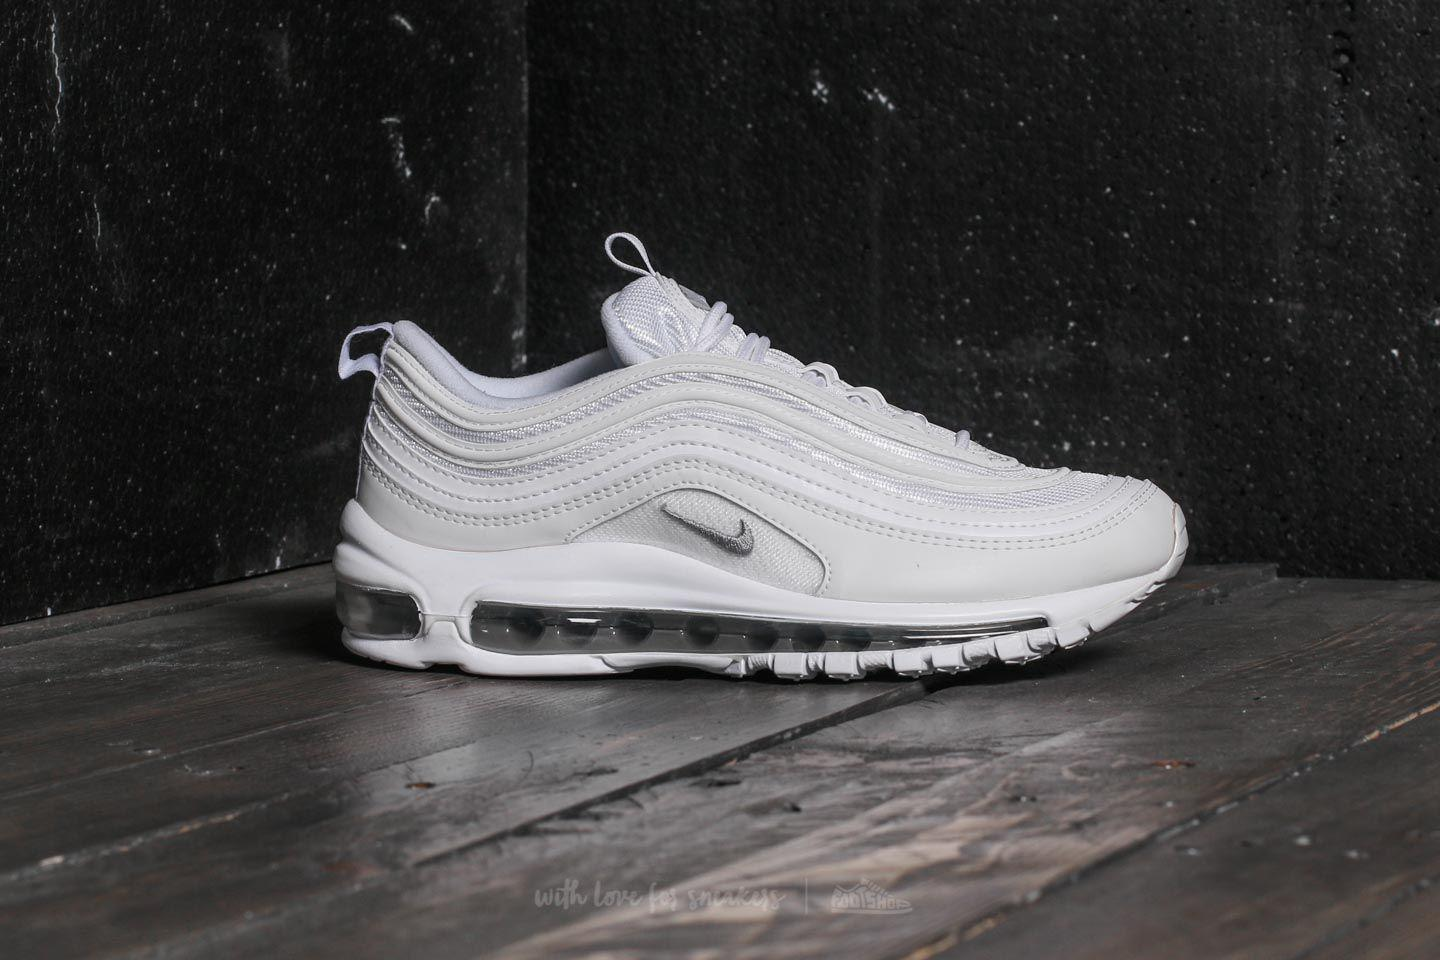 Lyst - Nike Air Max 97 (gs) White Wolf Grey-black in Black